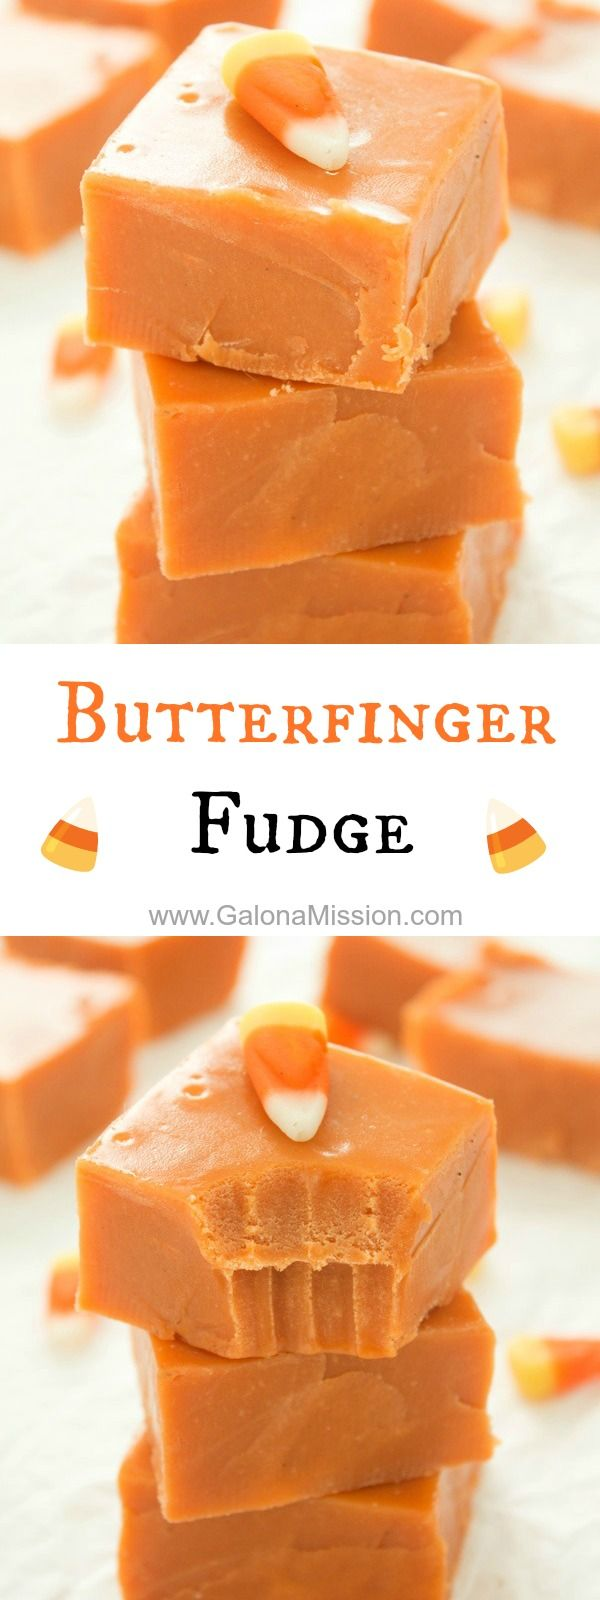 Butterfinger Fudge (Ingredients: Sweetened Condensed Milk, Candy Corn, Peanut Butter & White Chocolate Chips.) (This is not your typical fudge, it's even better! You'll fall in love with this delicious butterfinger fudge!) l Gal on a Mission